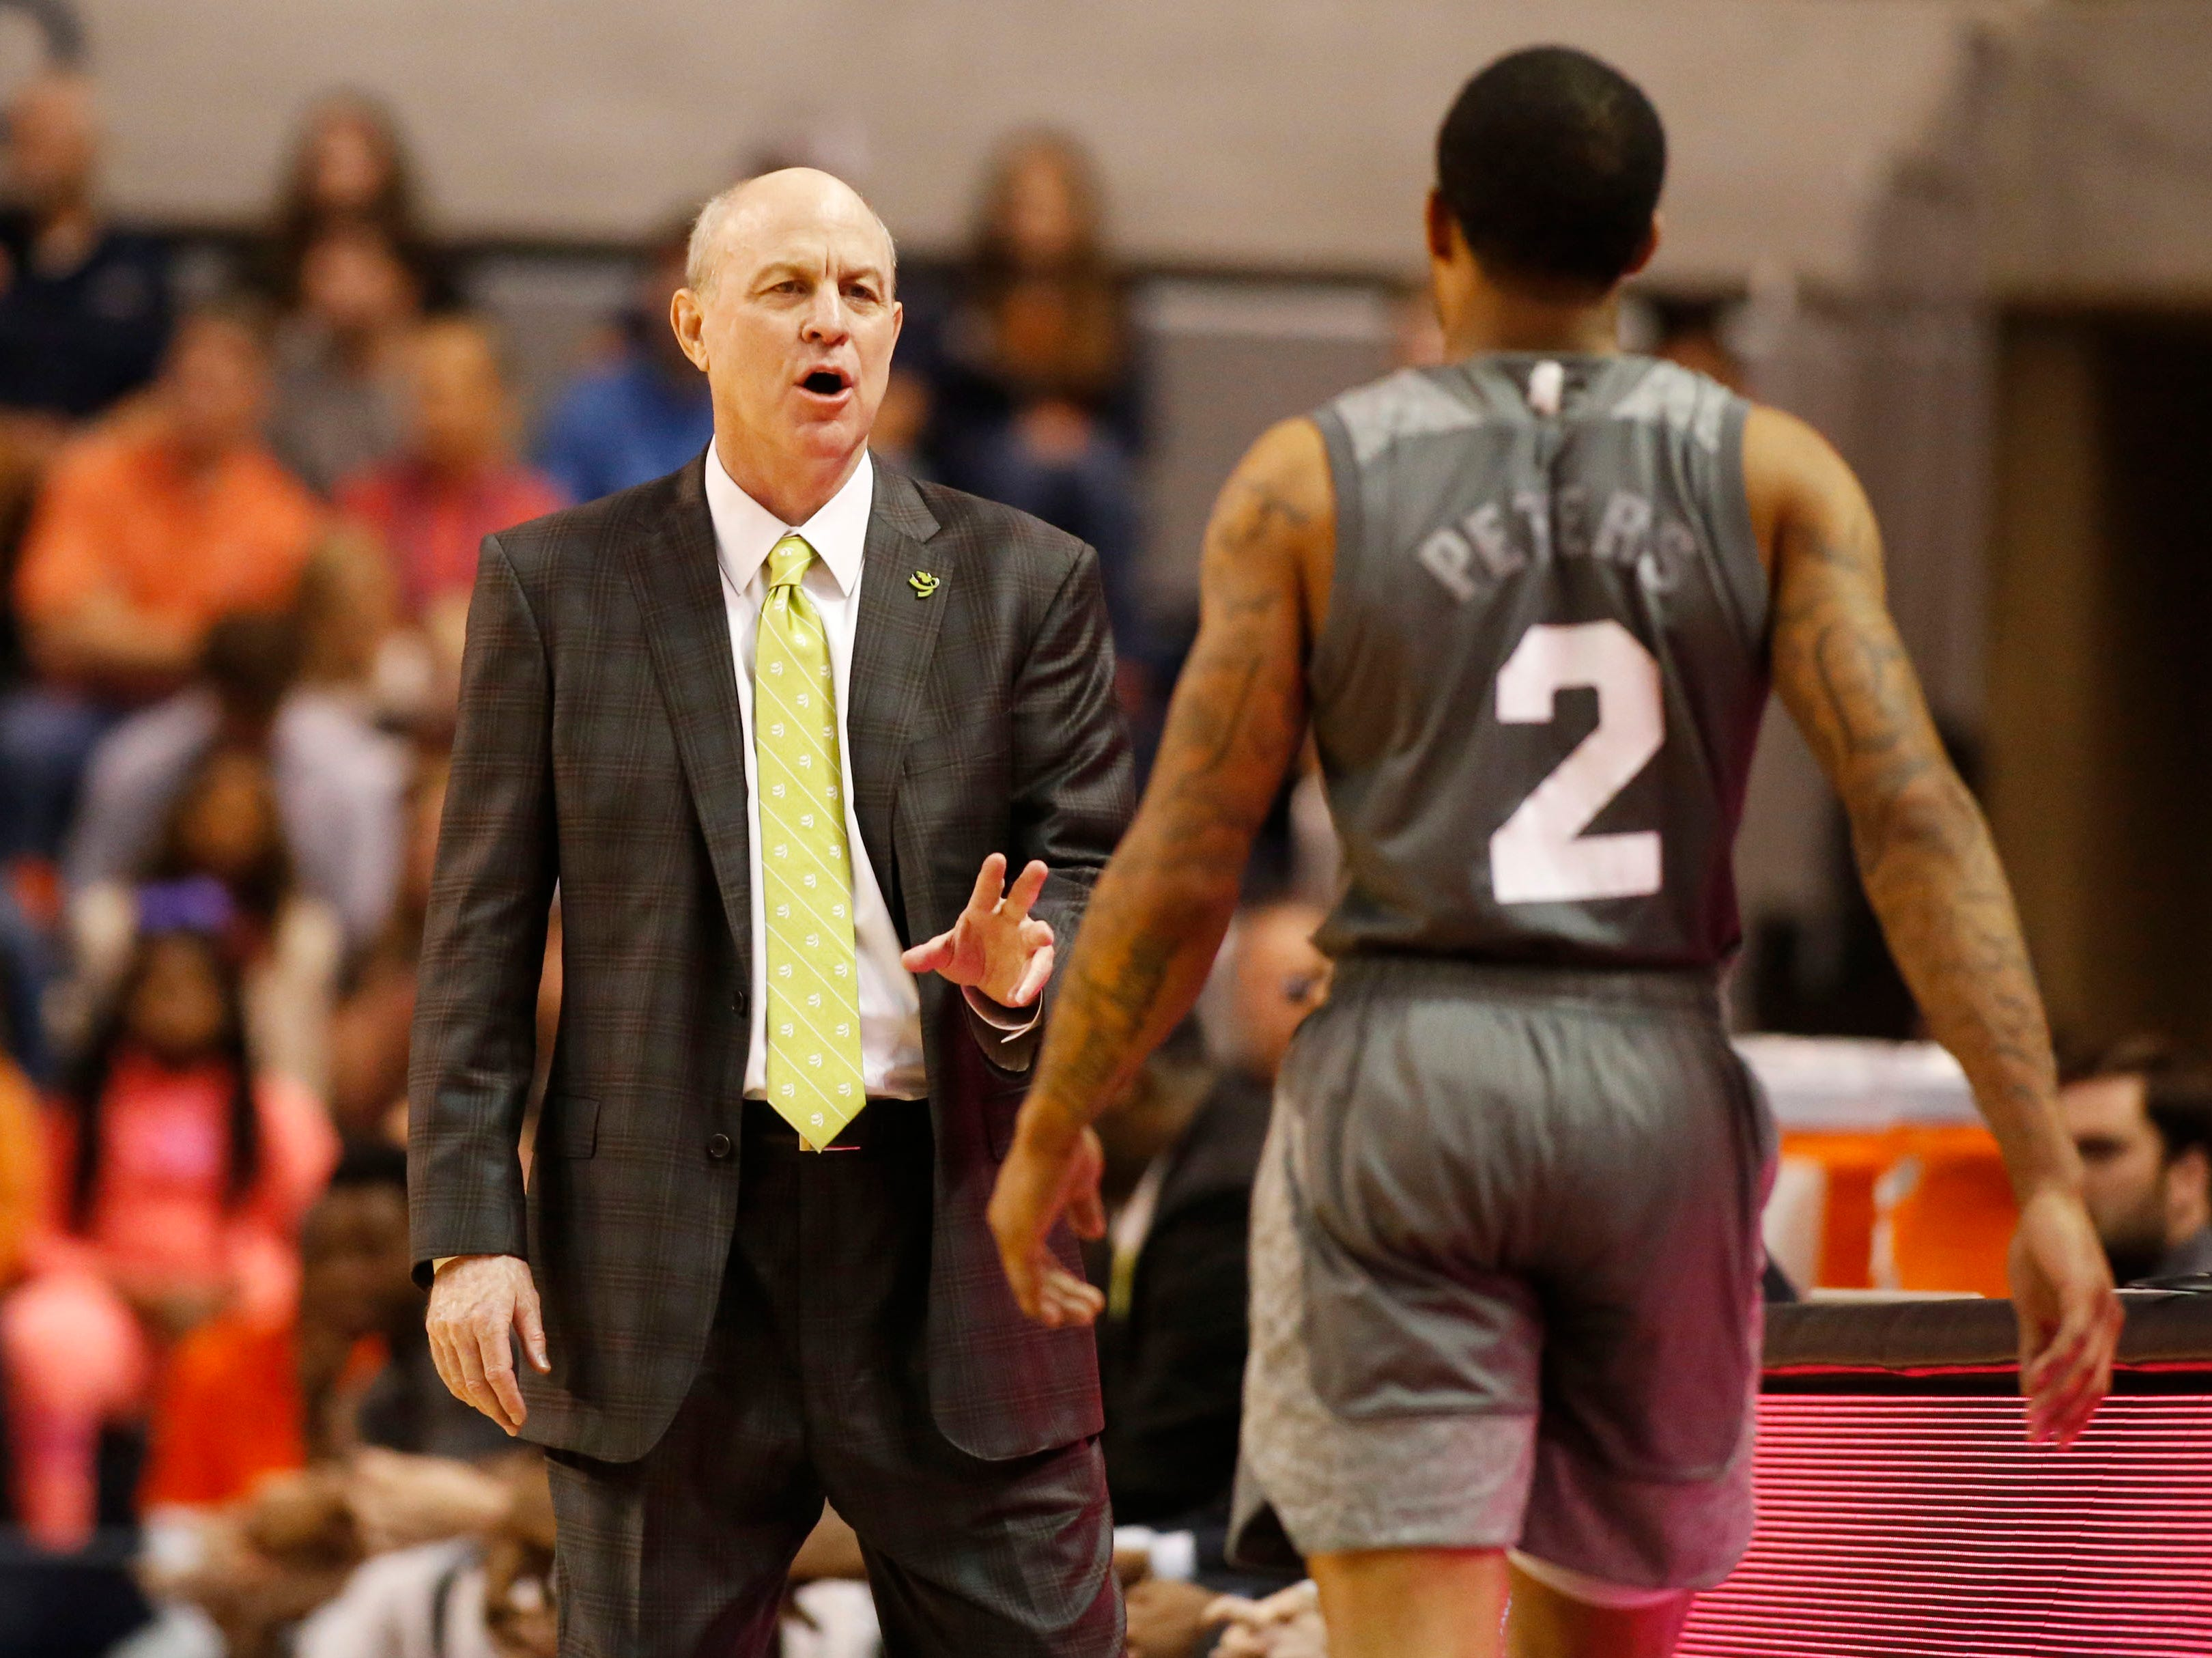 Mar 2, 2019; Auburn, AL, USA; Mississippi State Bulldogs head coach Ben Howland talks to guard Lamar Peters (2) during the second half against the Auburn Tigers at Auburn Arena. Mandatory Credit: John Reed-USA TODAY Sports